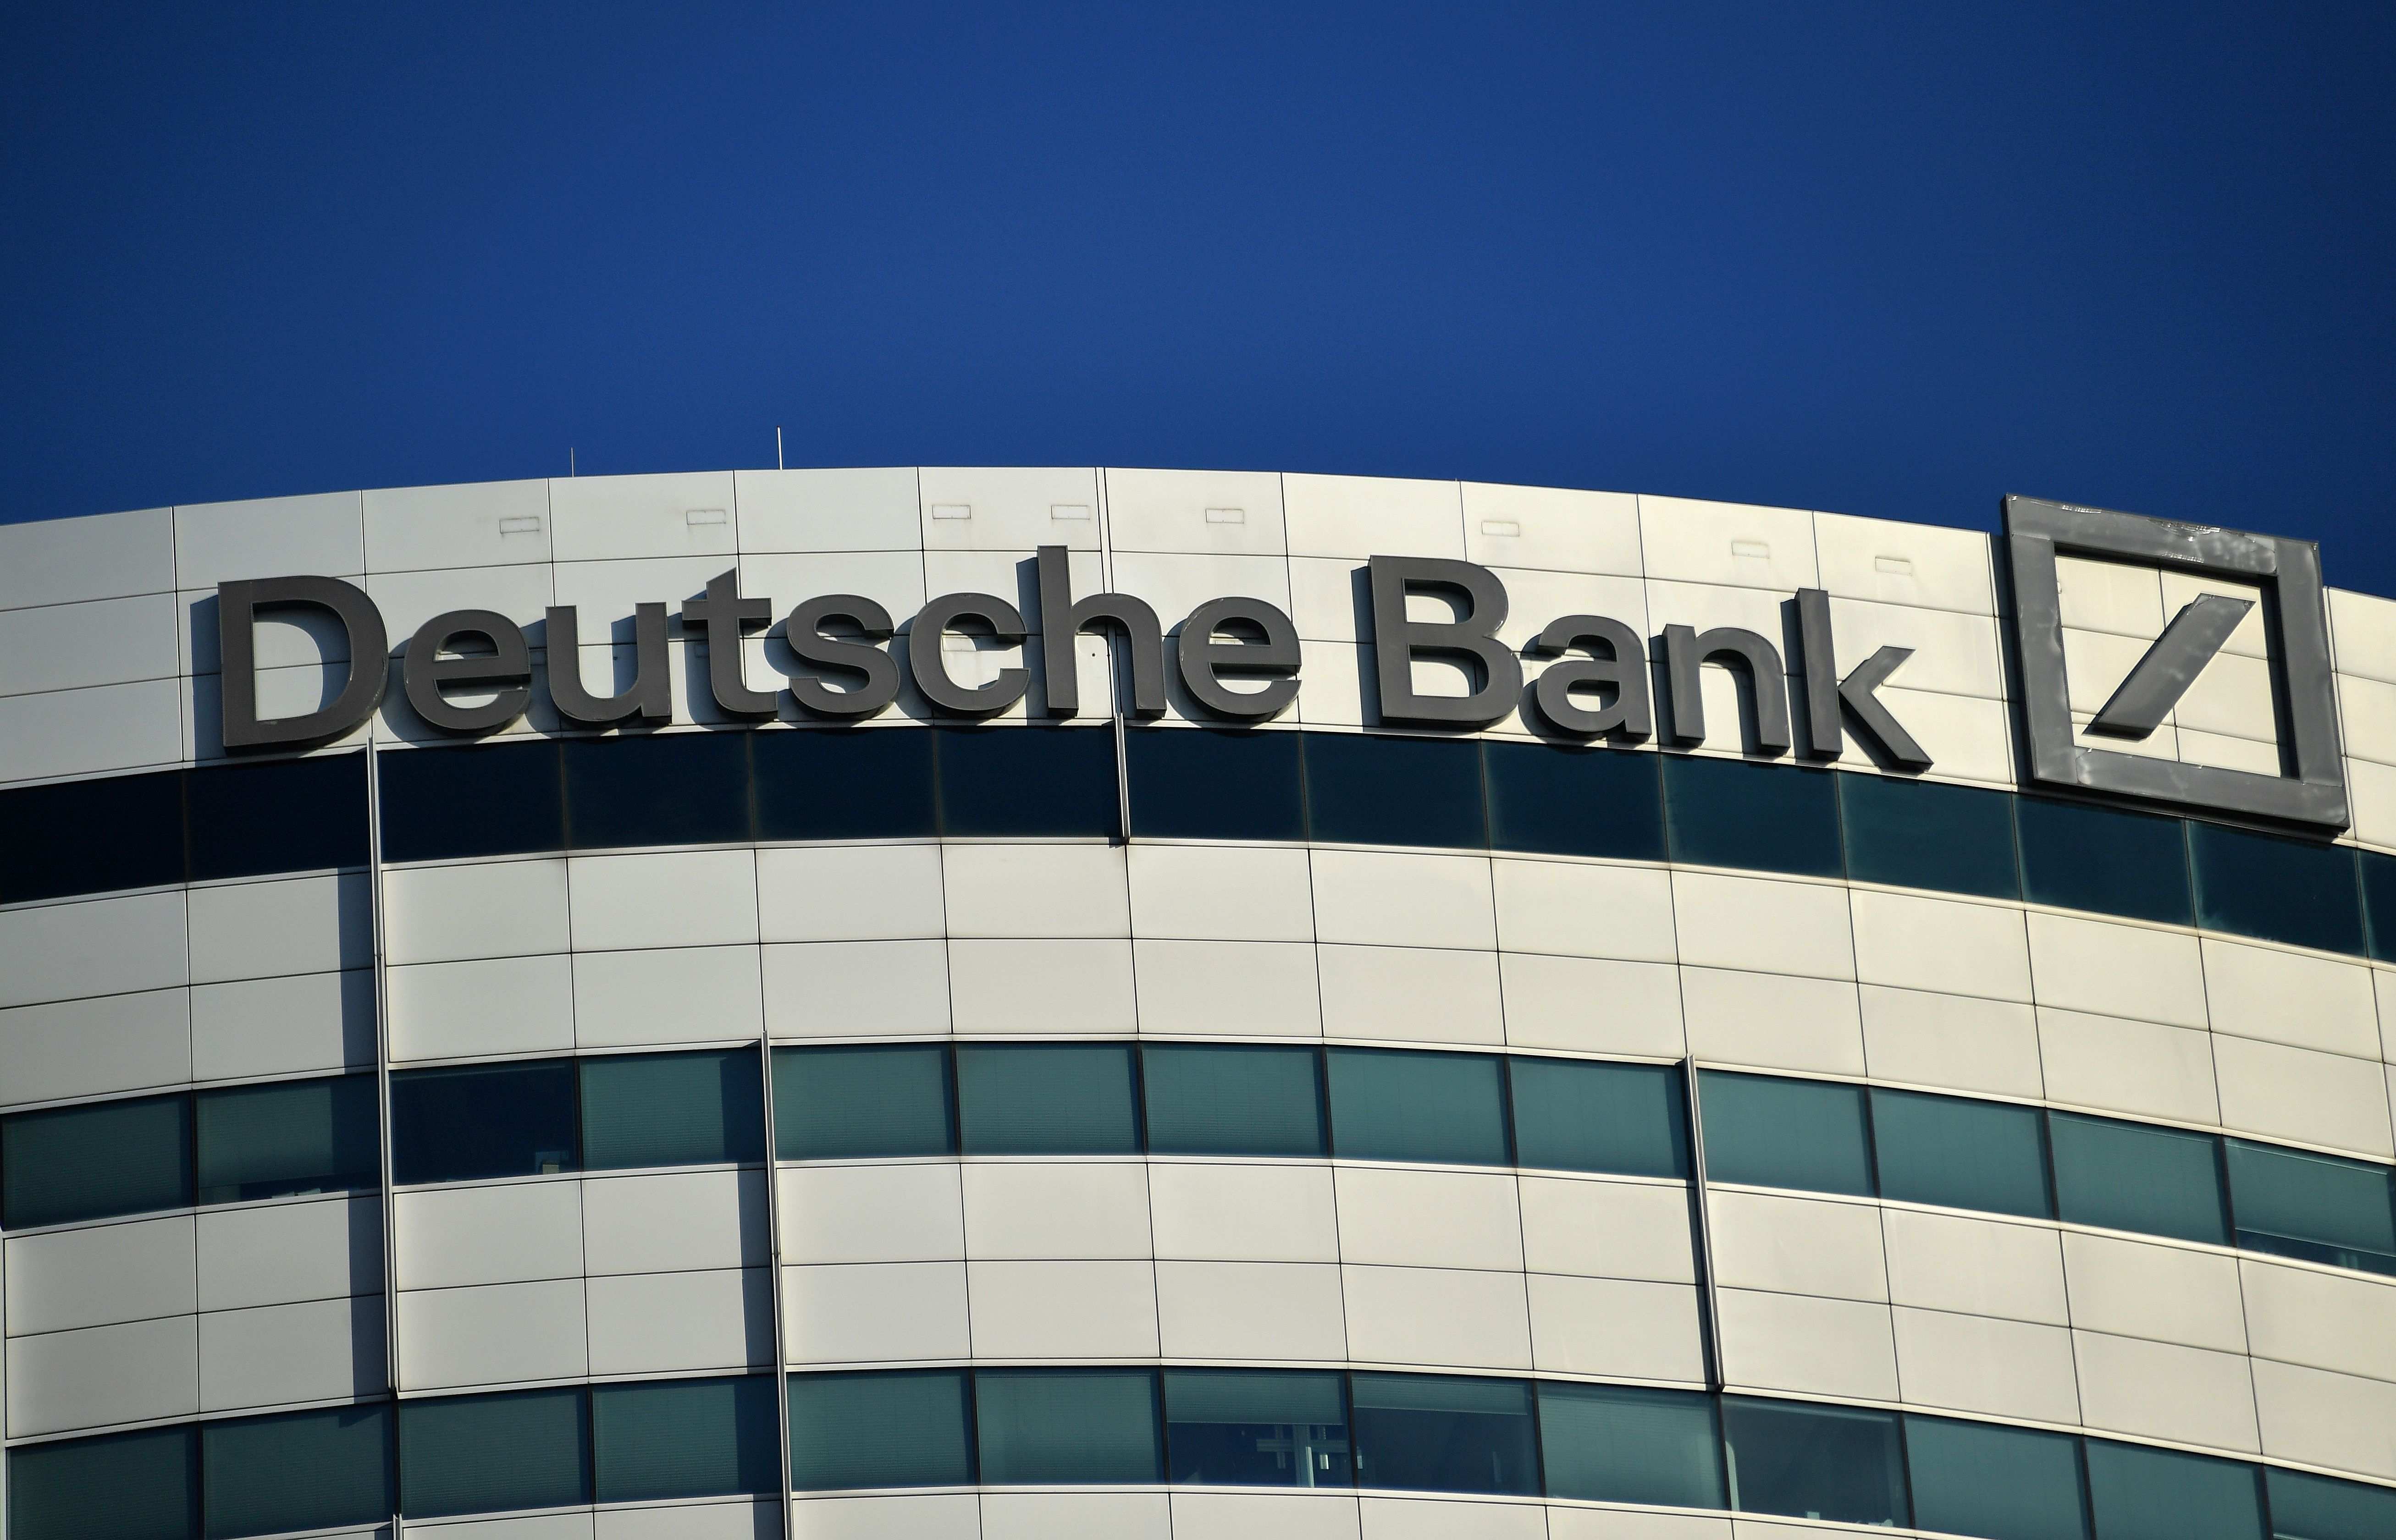 A view of German investment bank and financial services Deutsche Bank building in Amsterdam on October 14, 2018. (EMMANUEL DUNAND/AFP/Getty Images)